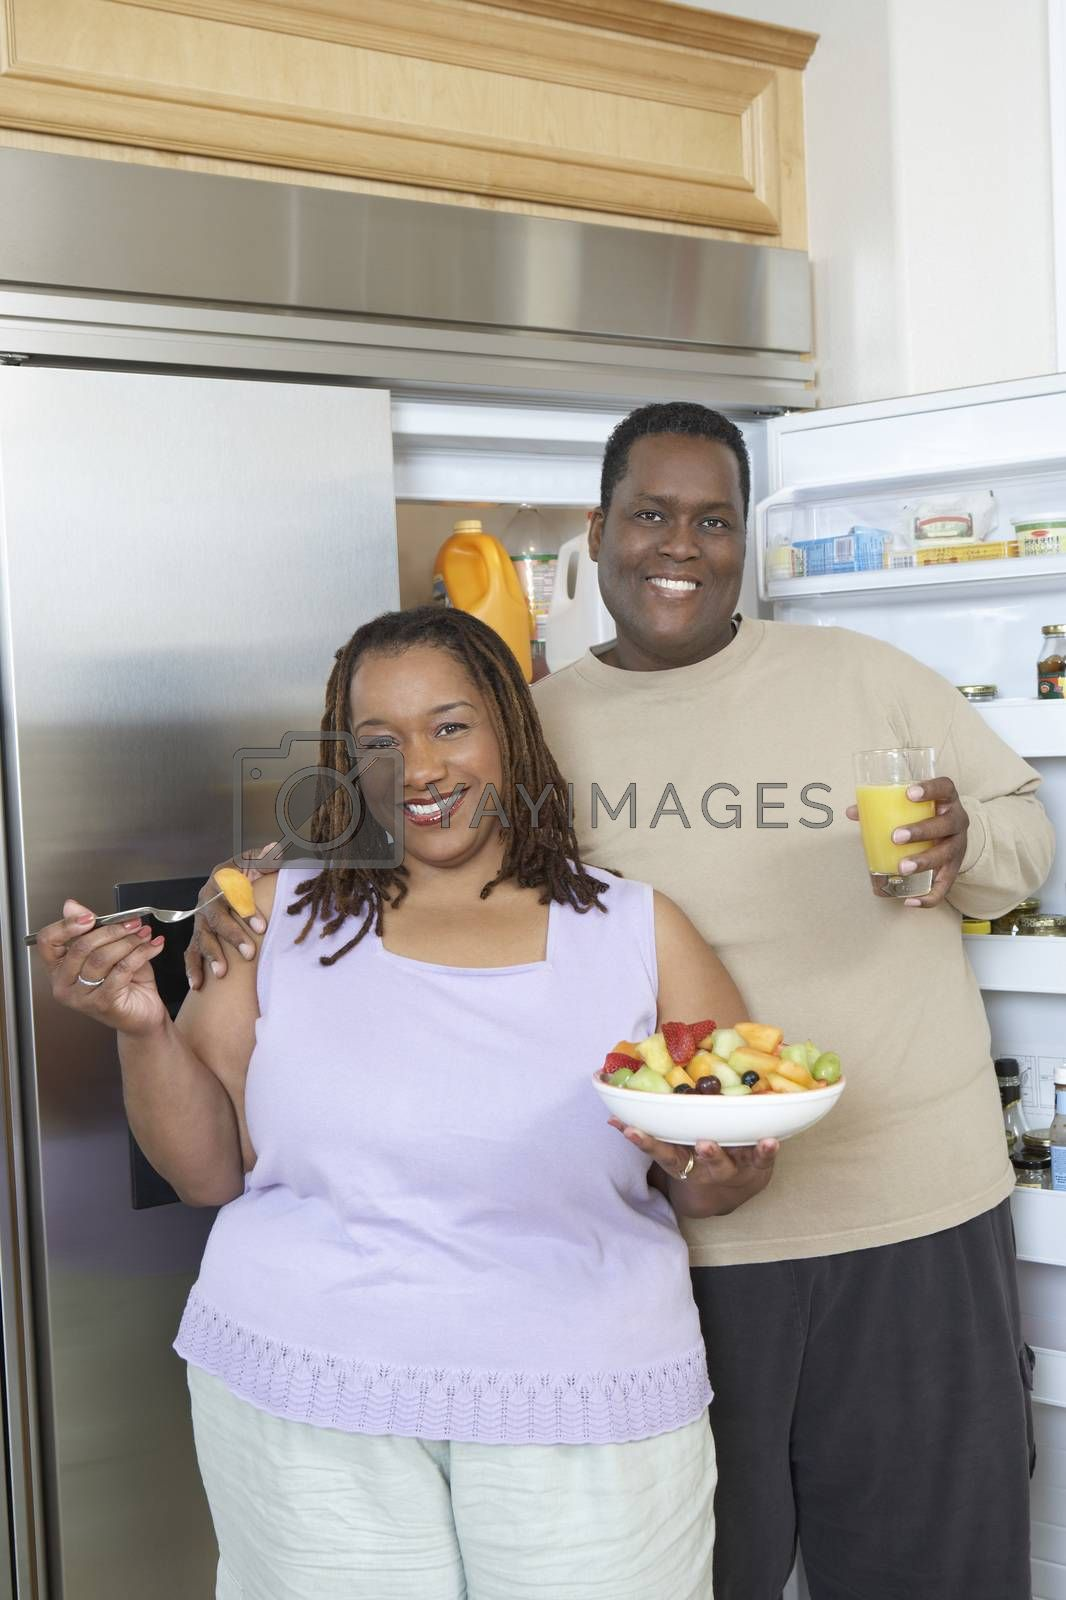 Couple with food and drink by open fridge by moodboard